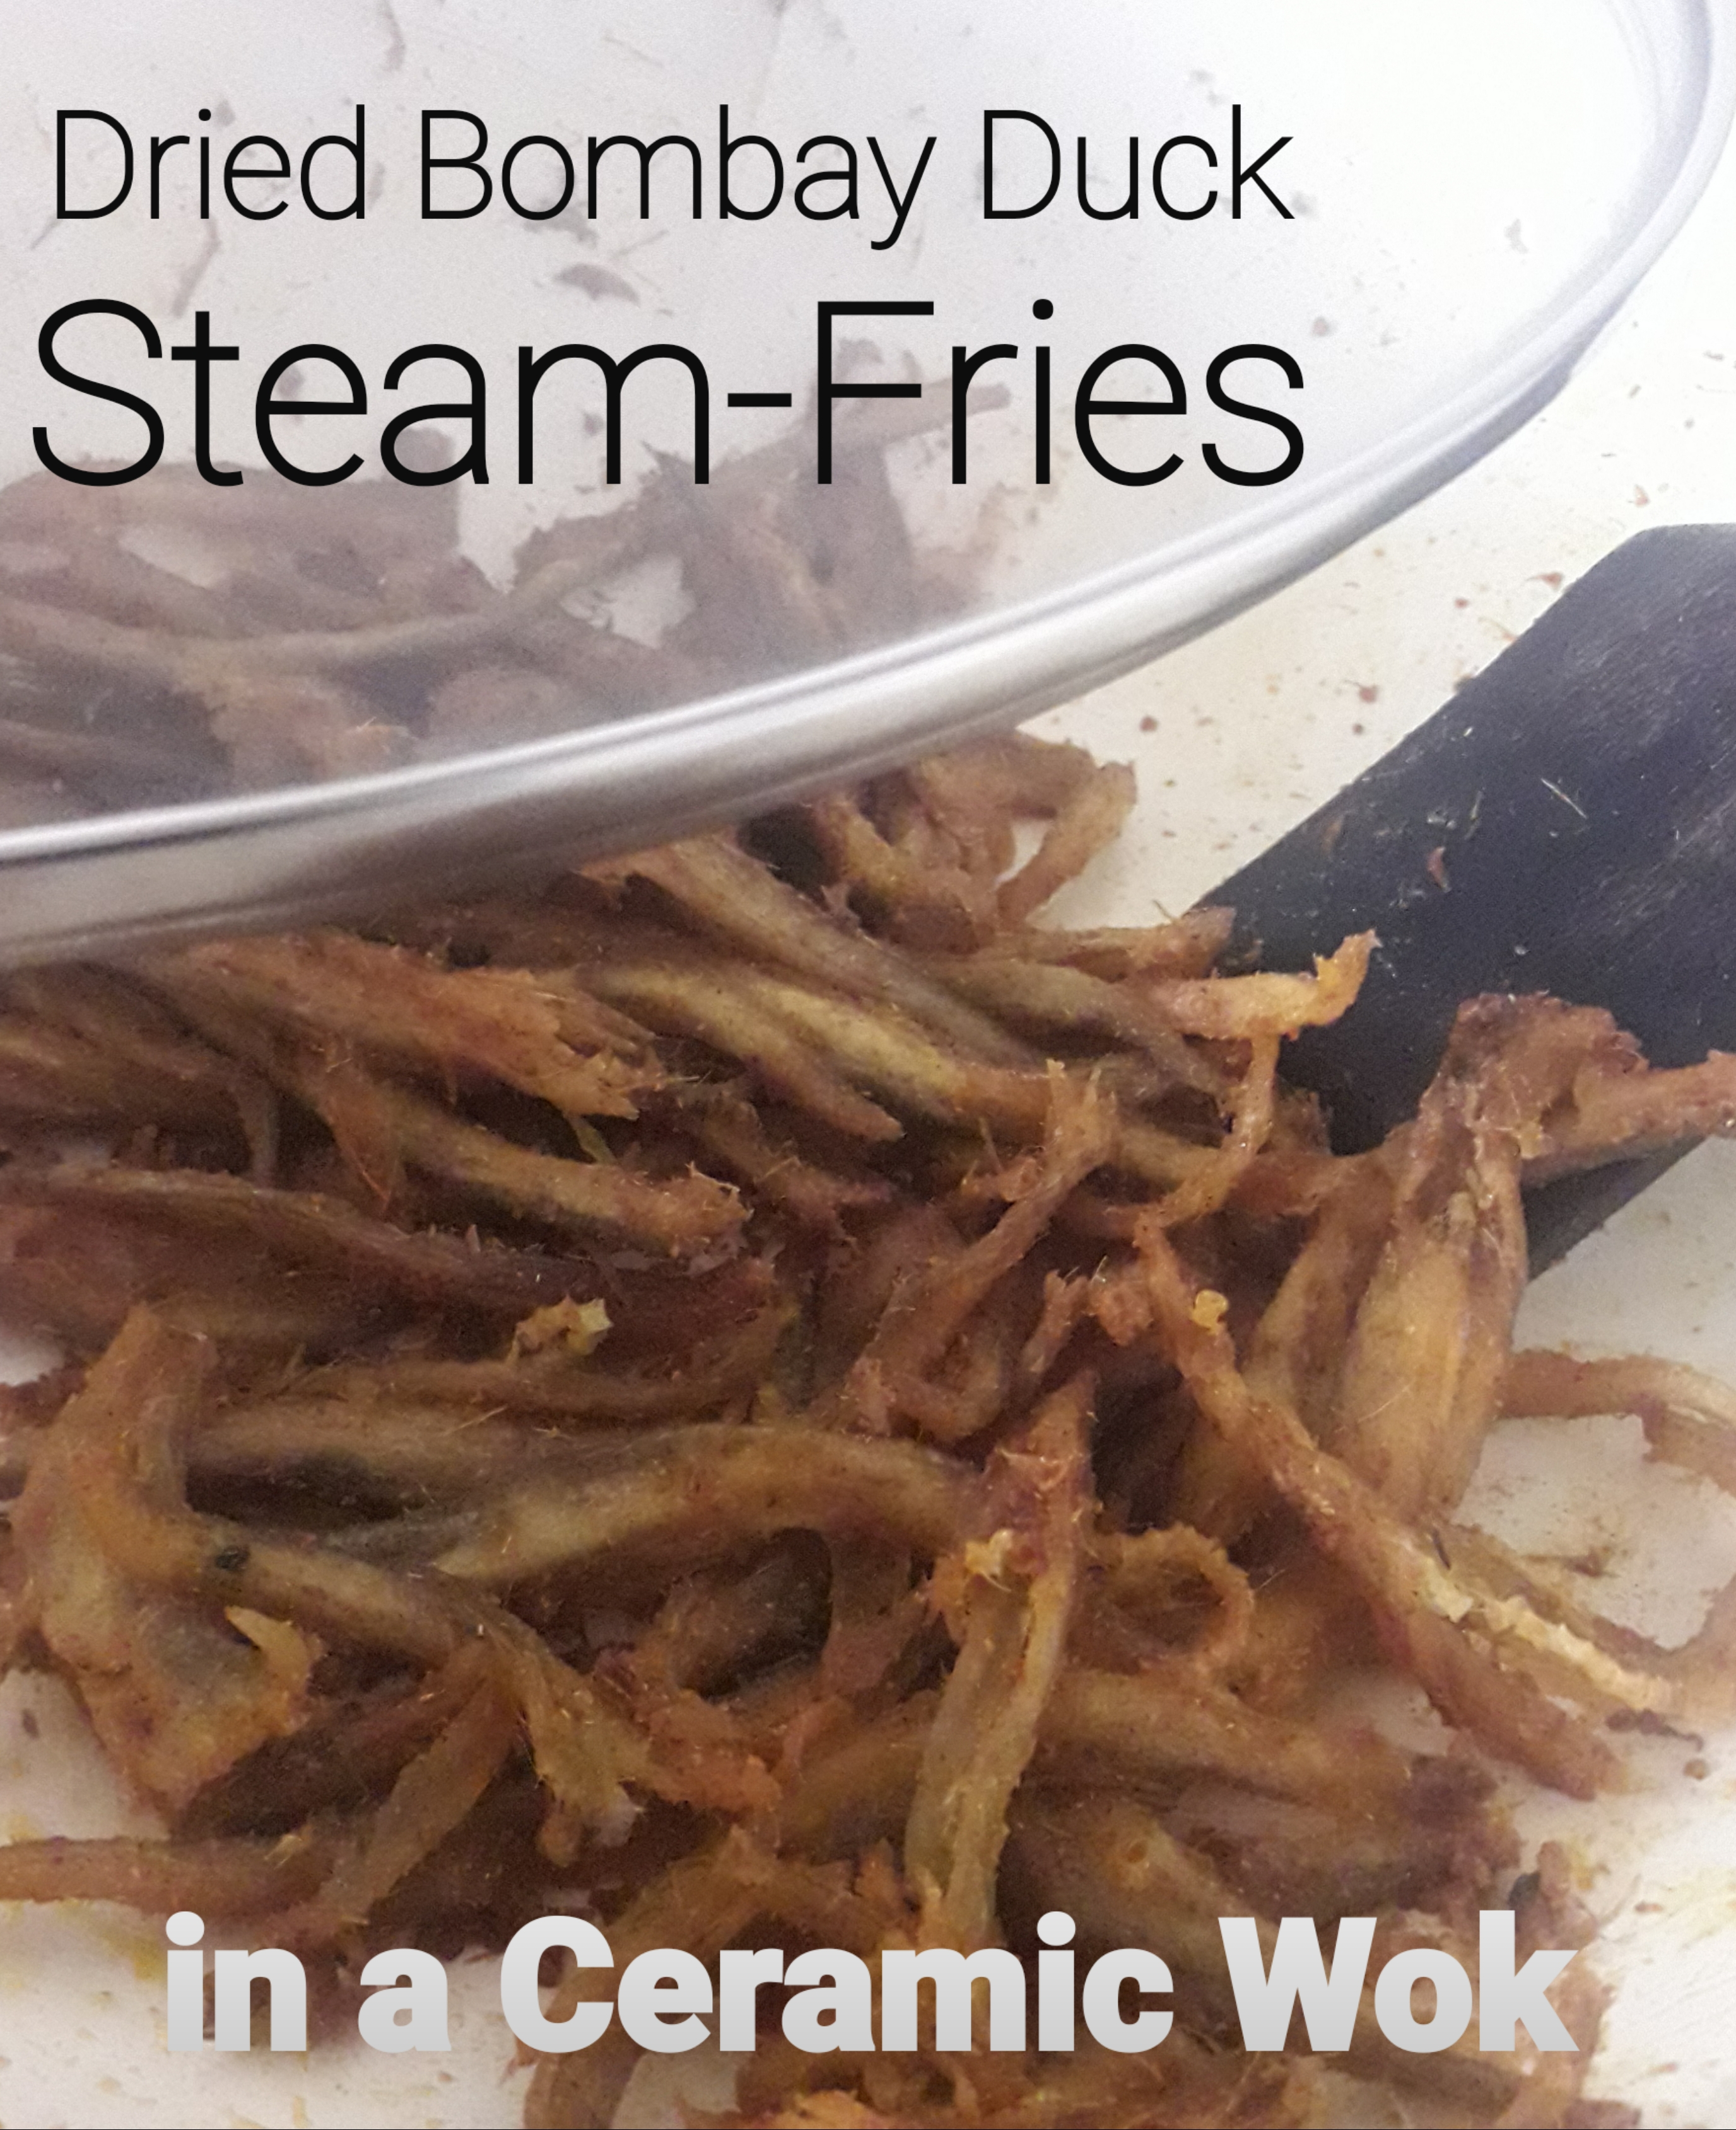 Dried Bombay Duck Steam-Fries